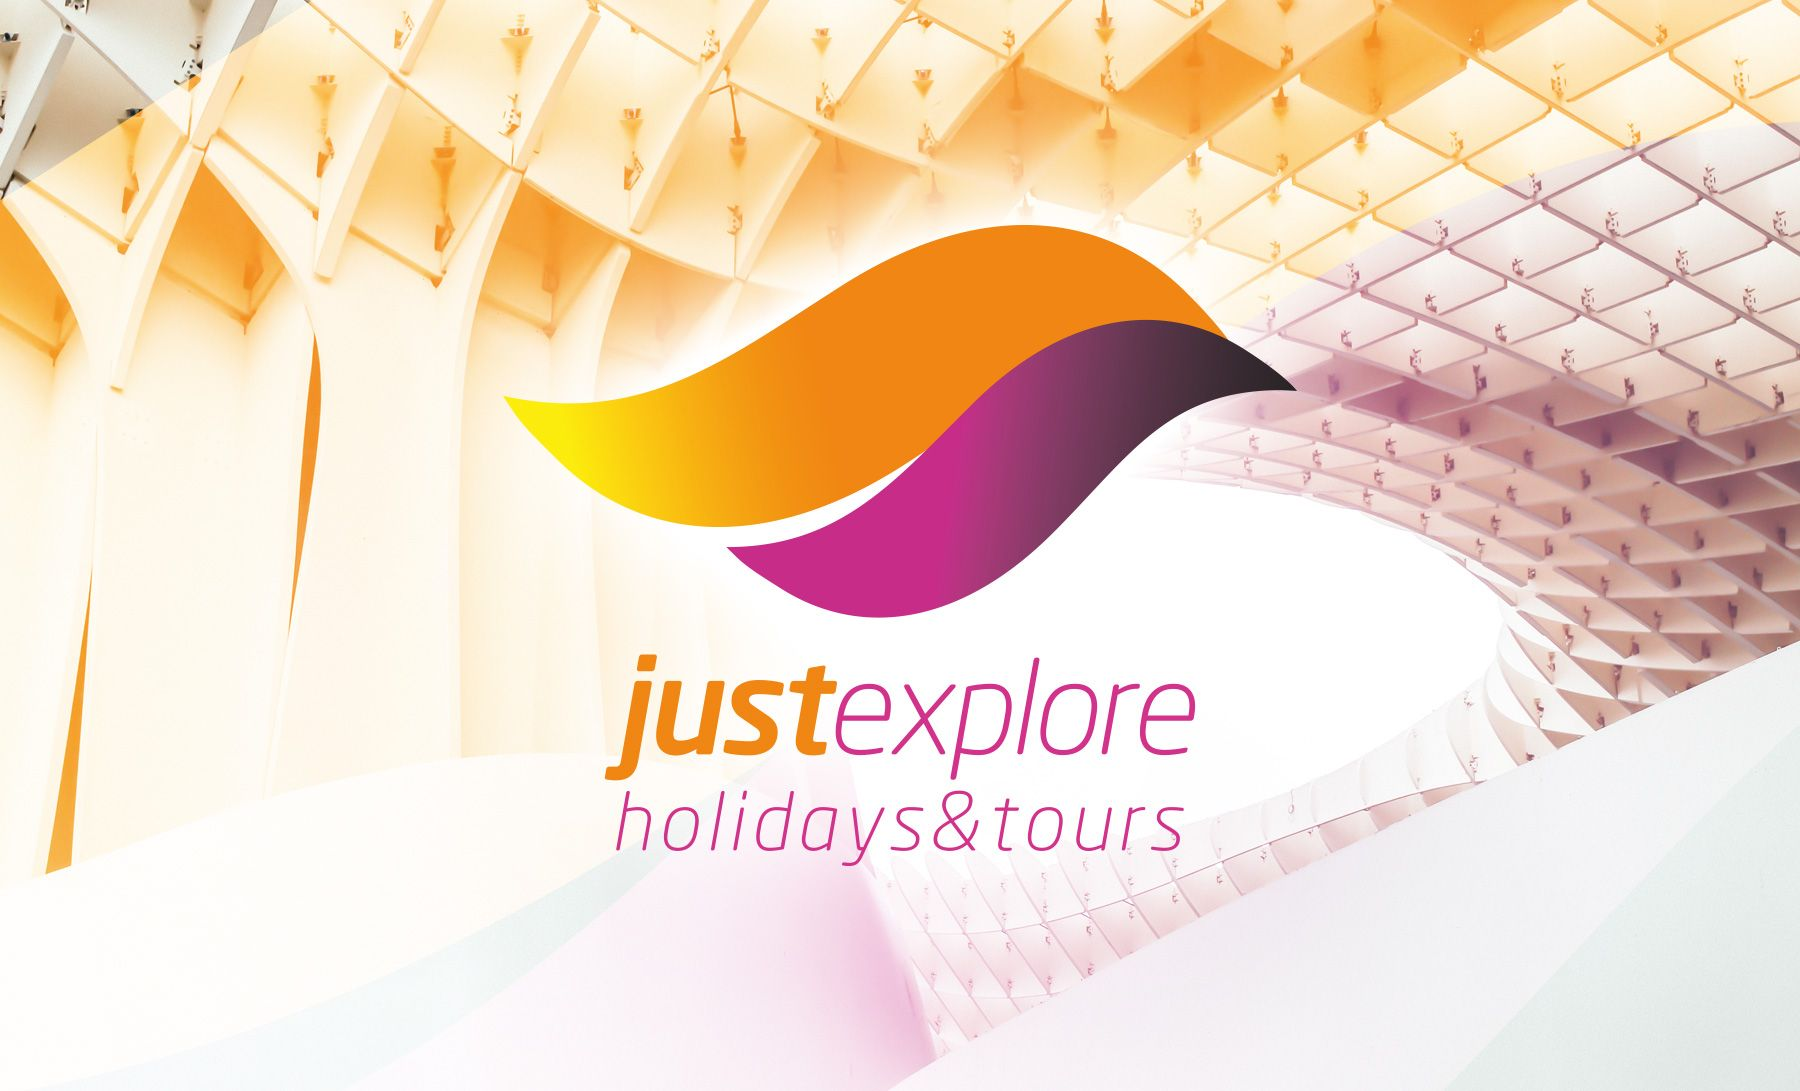 Just Explore Holidays & Tours